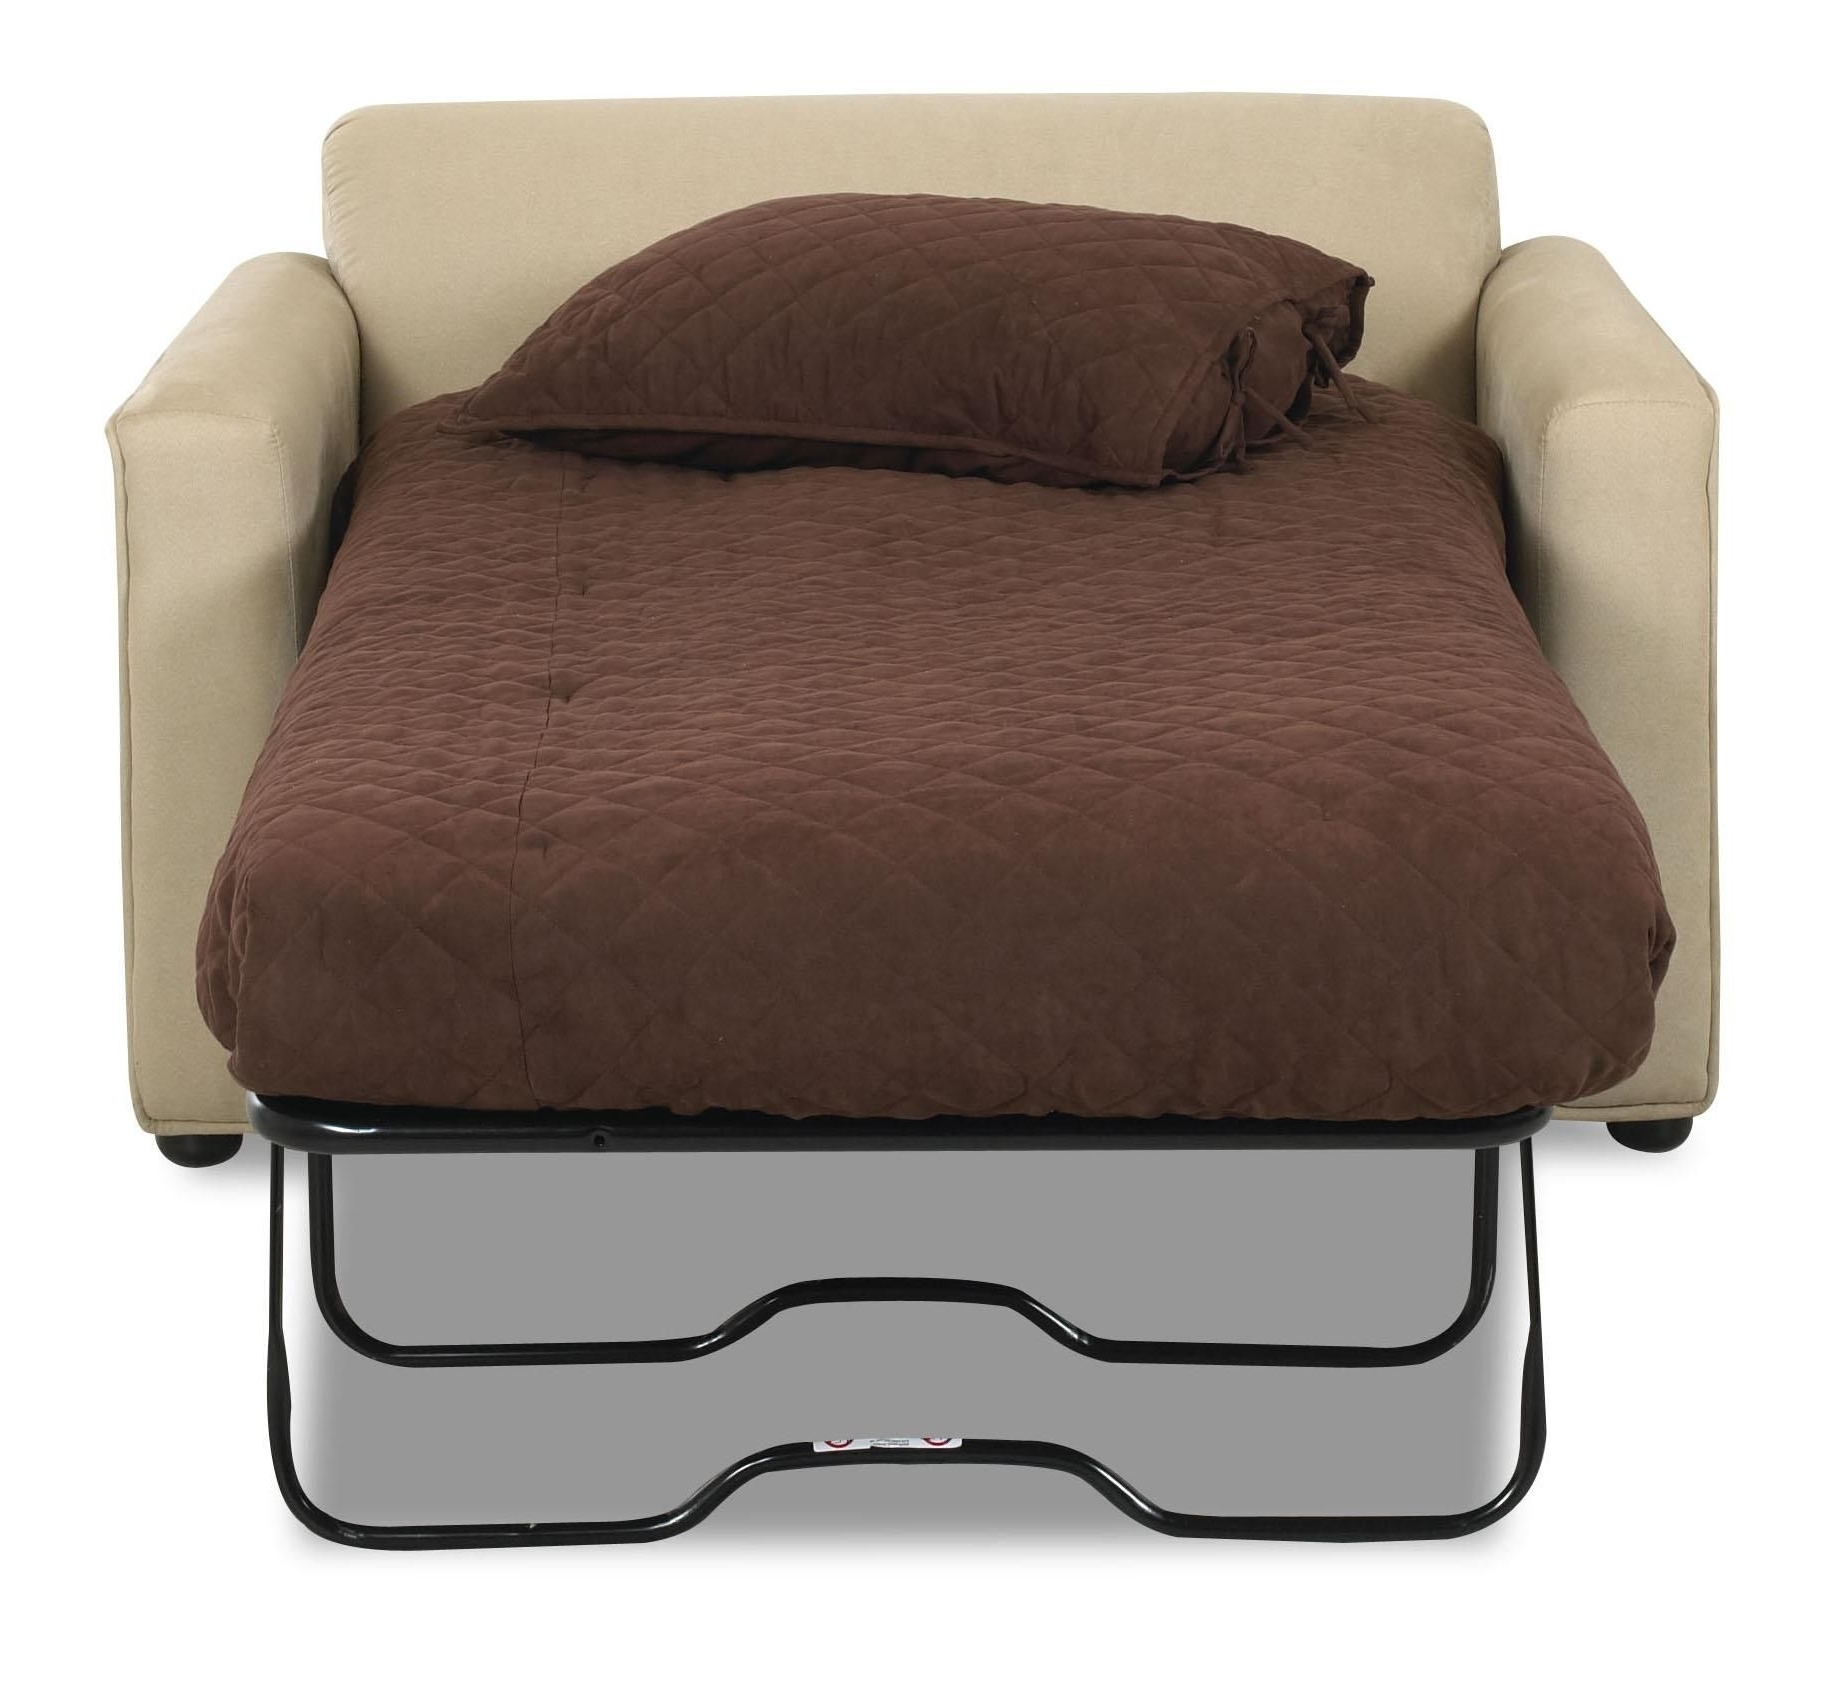 Best And Newest Chair That Folds Out Into A Twin Bed (View 2 of 20)